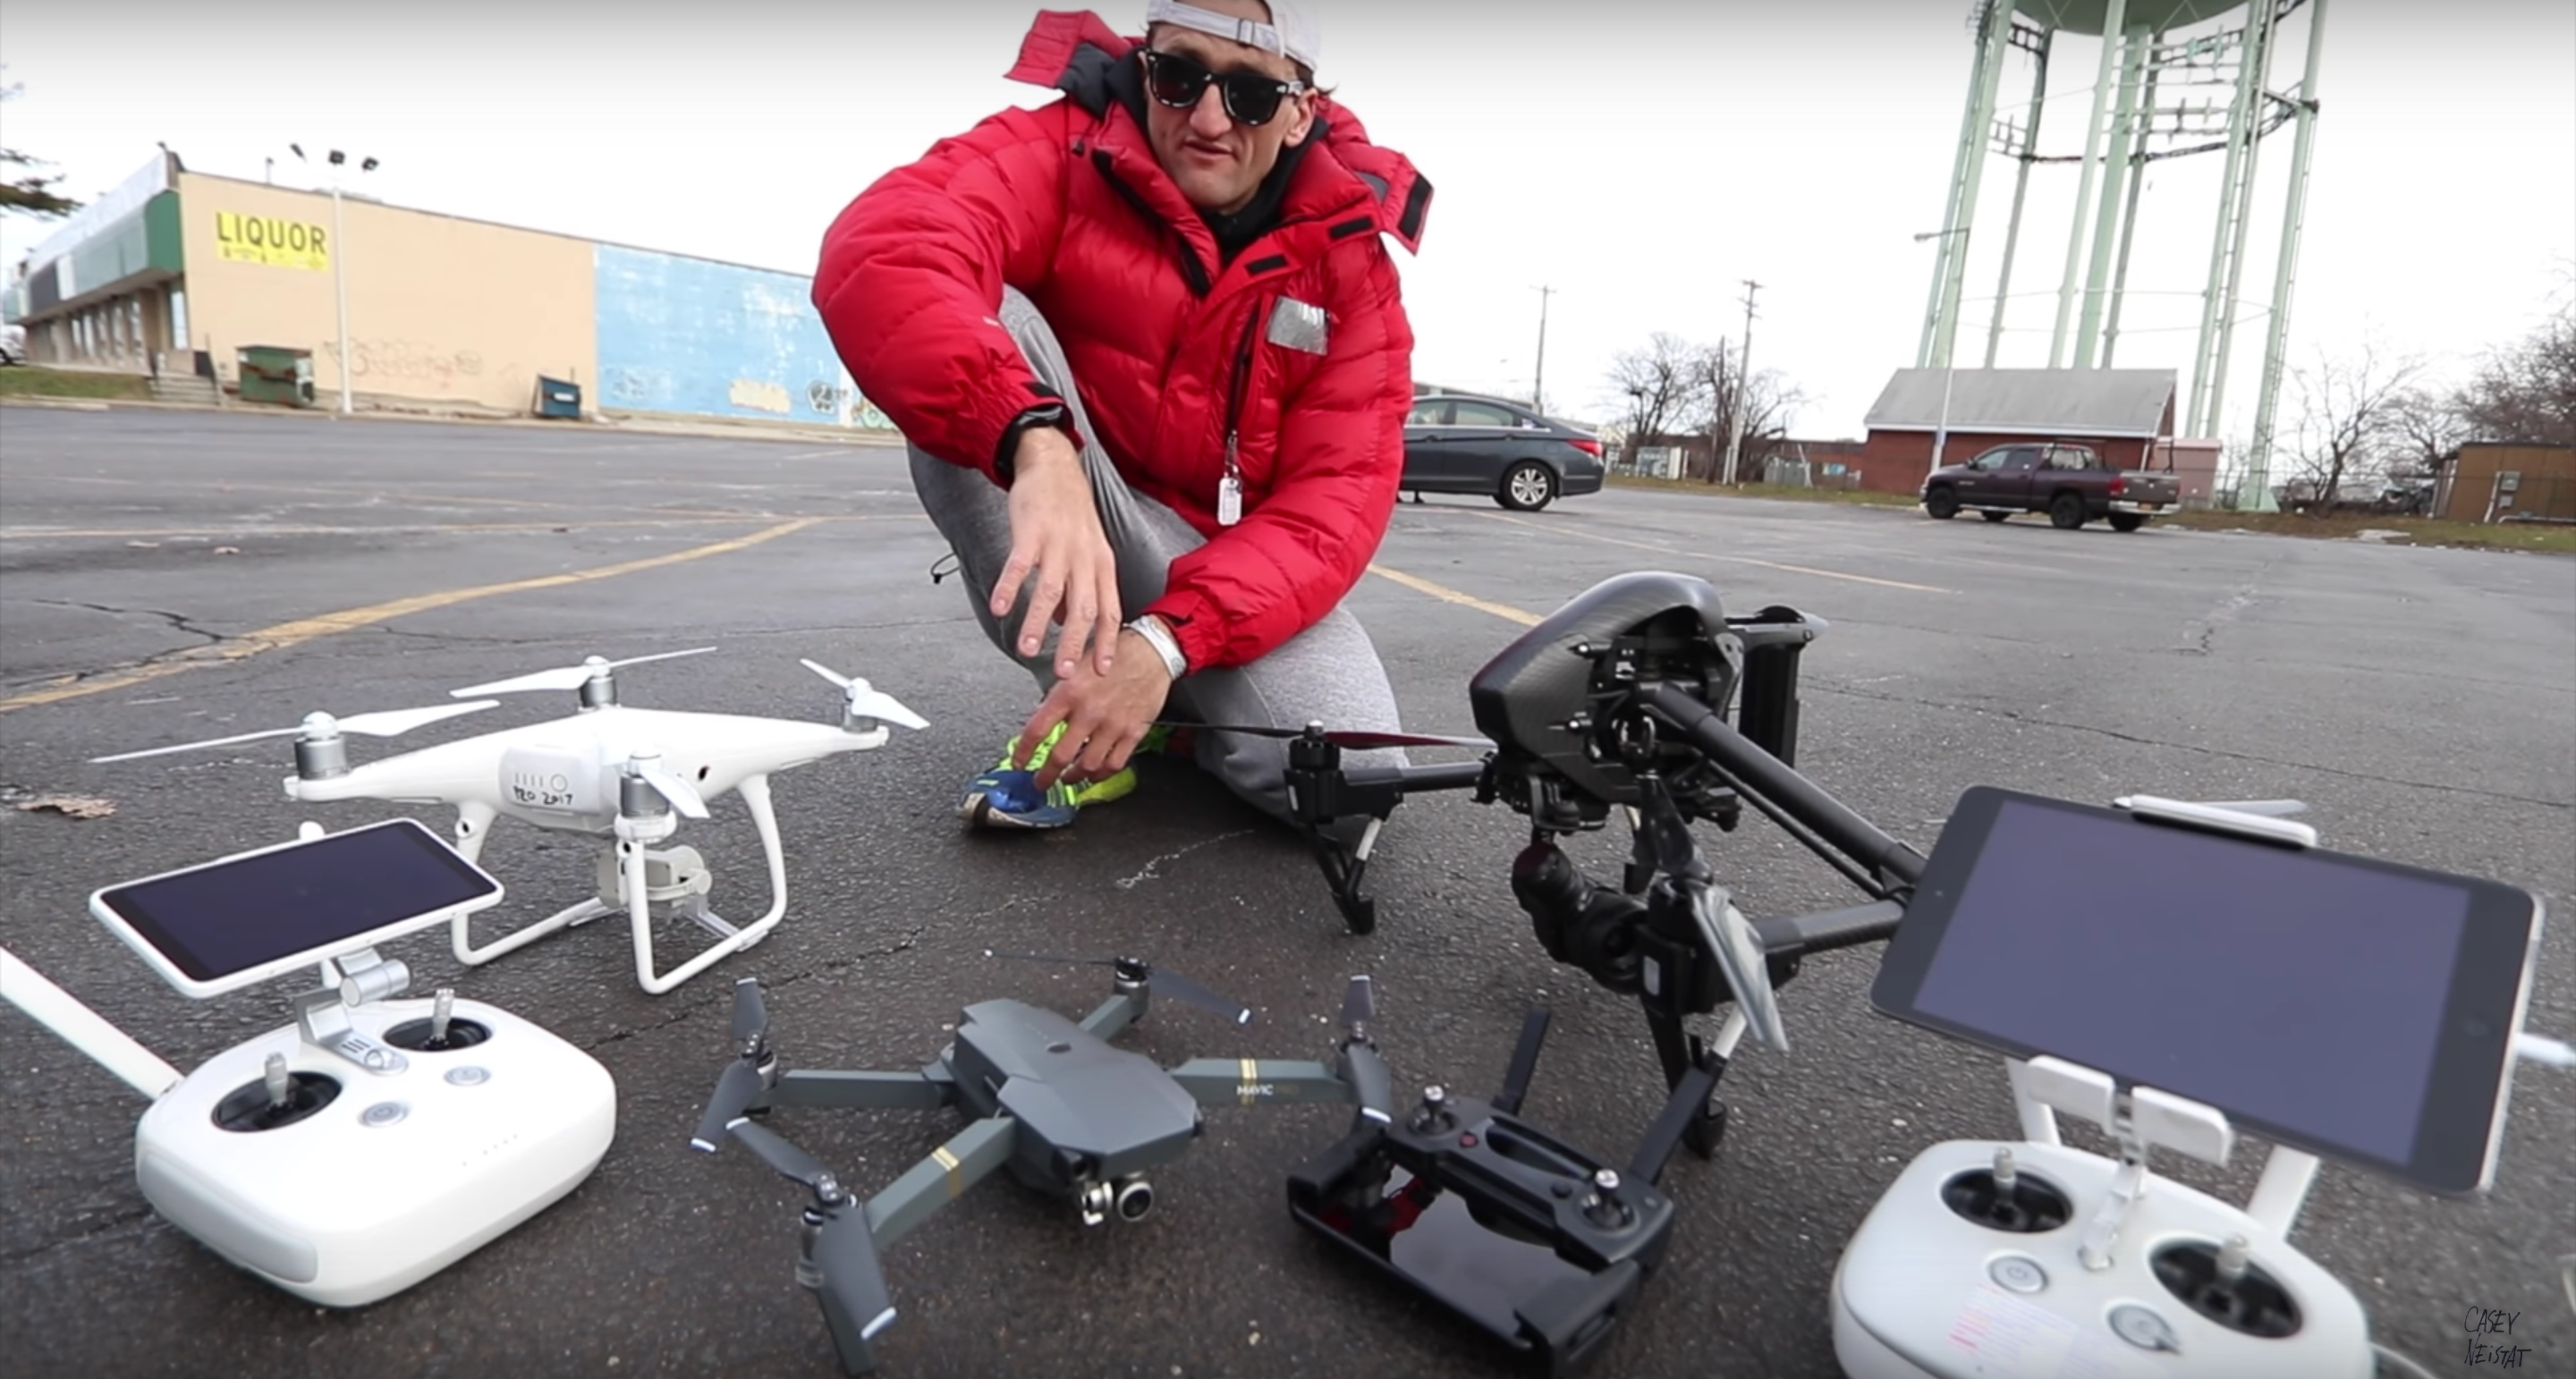 dji phantom drone review with 74248 on Emergency Services Drone DJI Thermal Matrice 600 Pro Kit p 1642 besides Yuneec CGO ET furthermore Eachine E58 Review furthermore Fpvlr Dji Mavic Pro 8dbi Long Range Antenna Upgrade Kit Fpvlrmavic8dbi Fpvlr in addition 2 Axis Flir Vue Pro Thermal Camera Stabilized Gimbal For Dji Phantom 4 Professional.